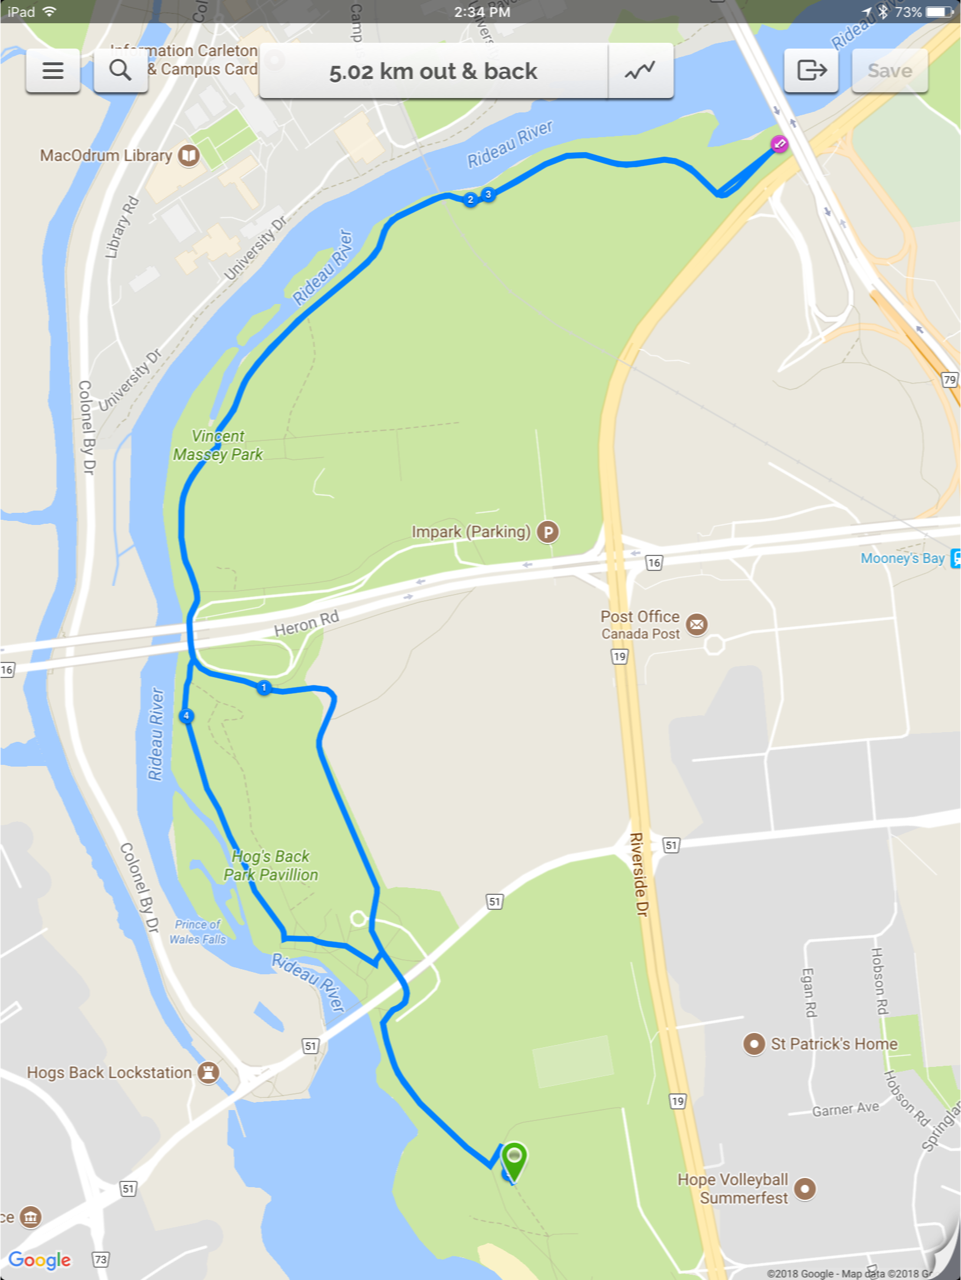 Running Room Online Event Registration - How to map out a run